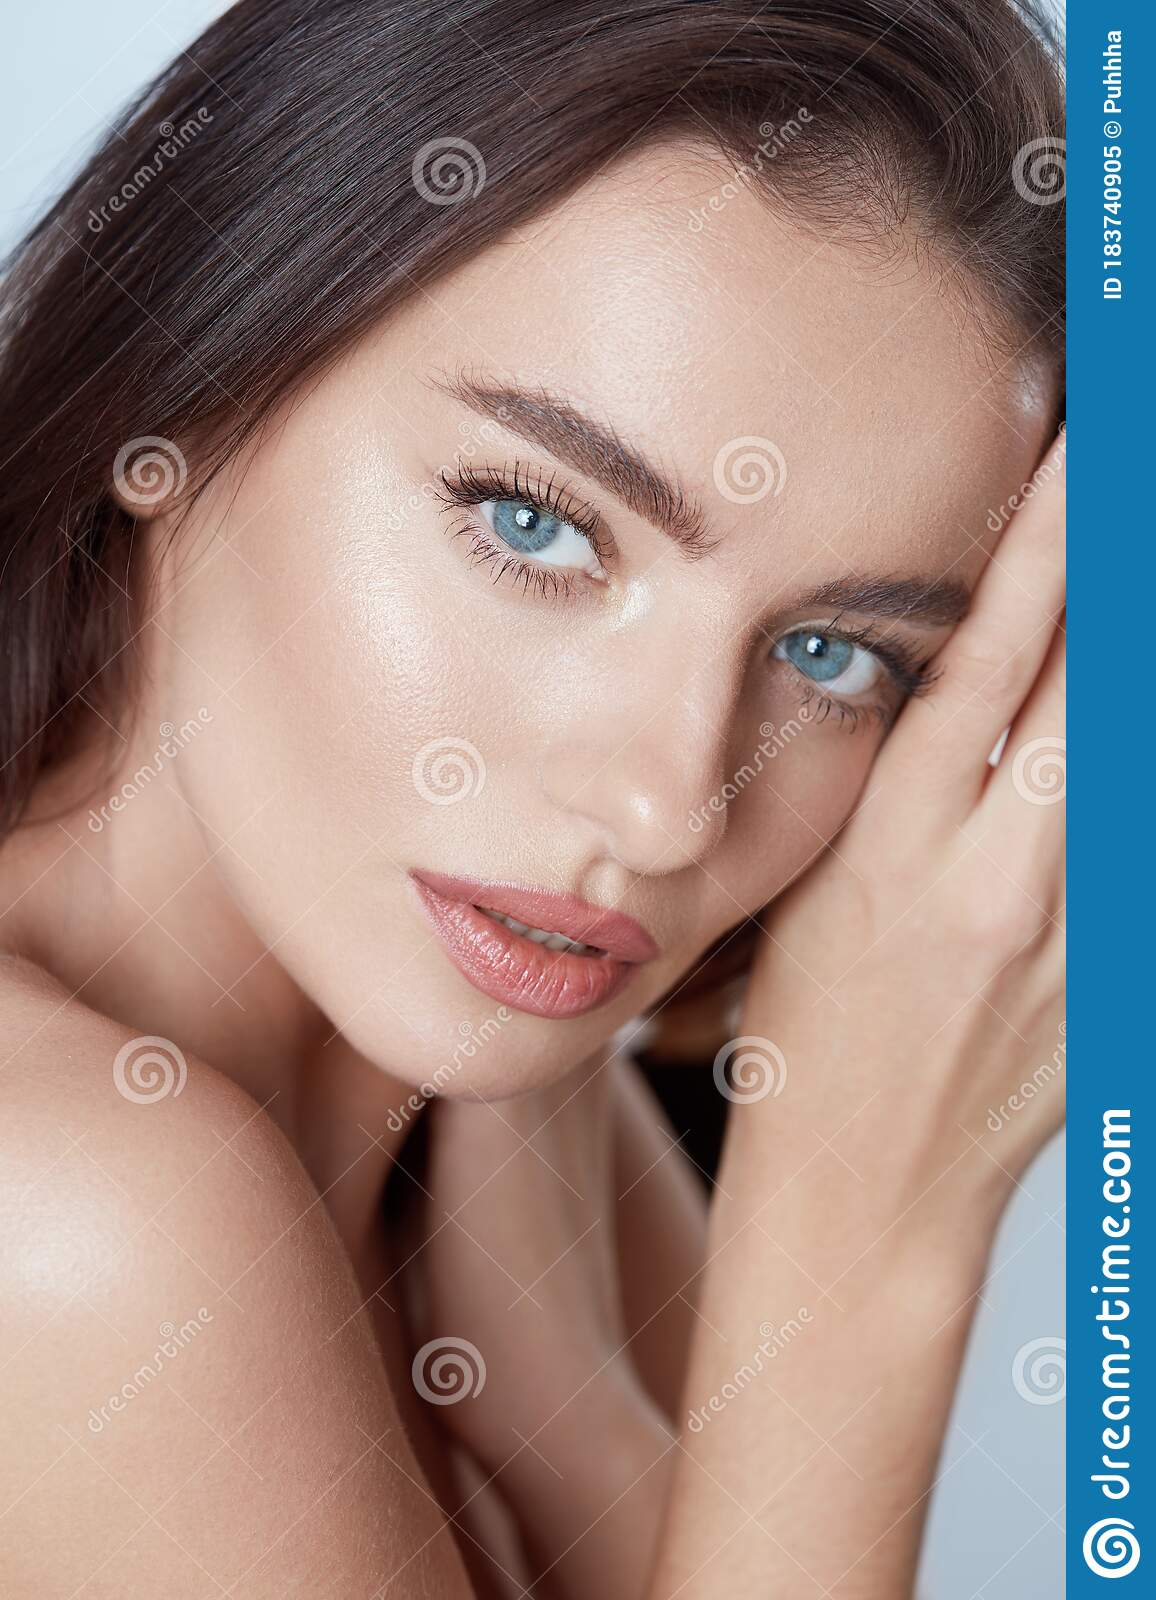 Beauty Beautiful Woman Close Up Portrait Young Blue Eyed Model With Perfect Skin And Natural Makeup Stock Image Image Of Brunette Indoor 183740905